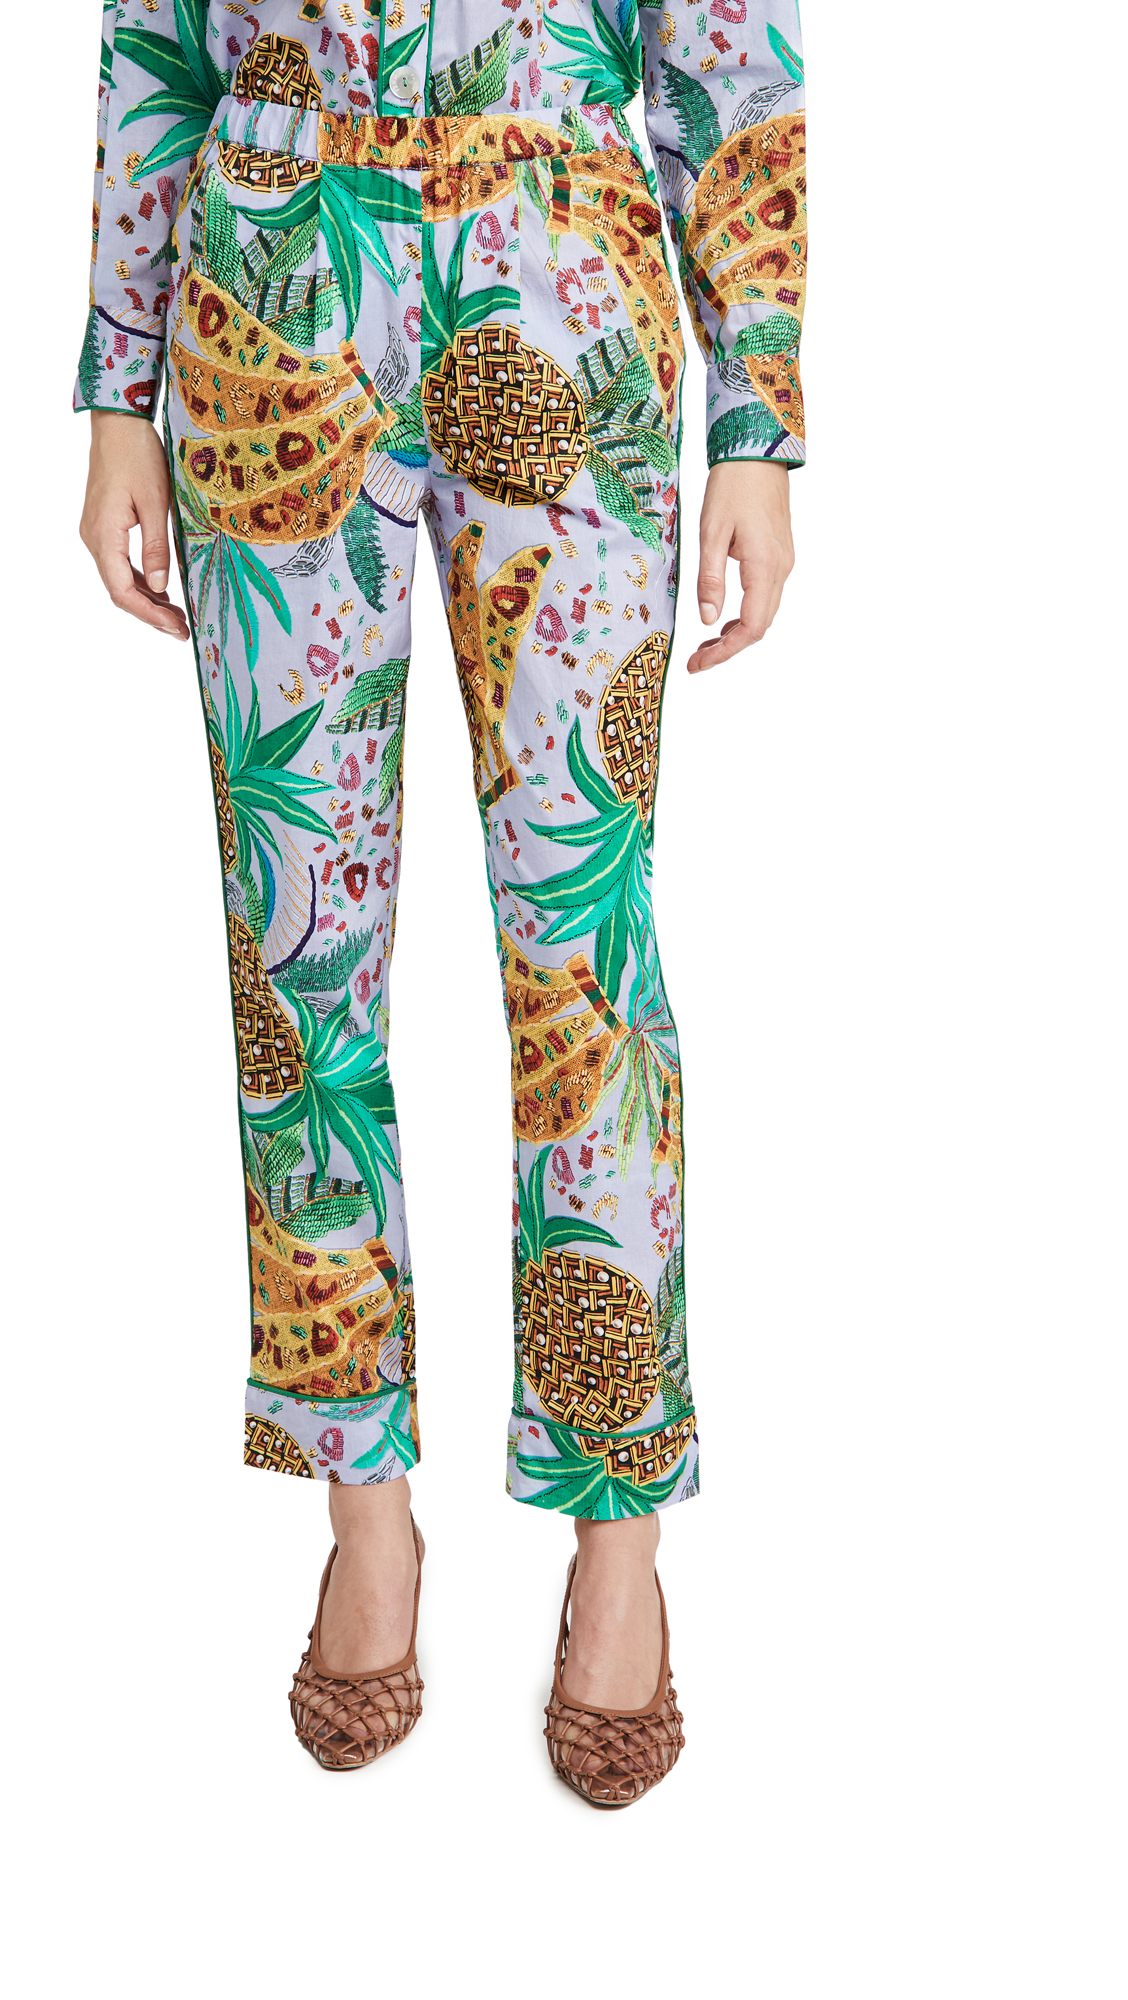 FARM Rio Lilac Mixed Fruits Pajama Pants